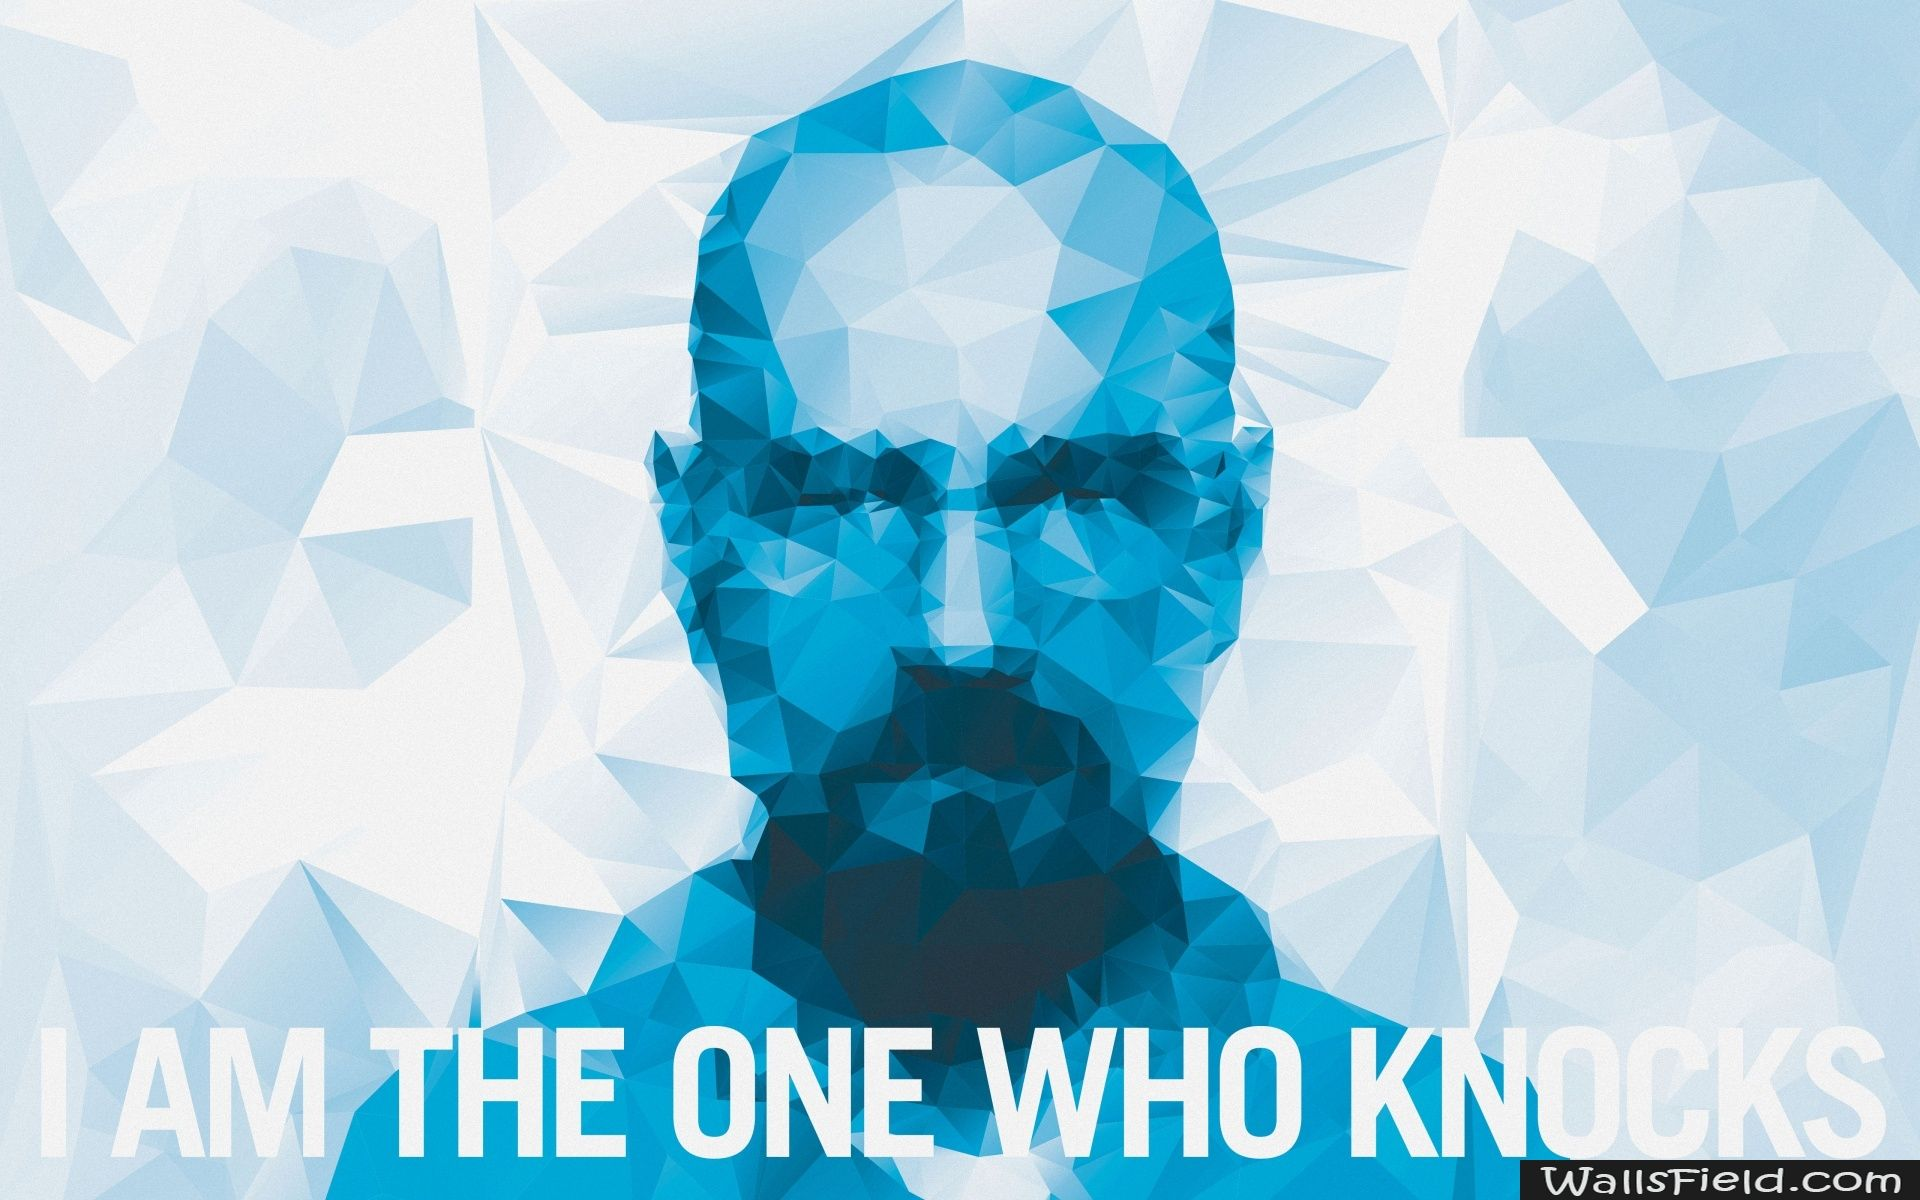 Heisenberg breaking bad heisenberg free hd wallpapers and hd you can view download and comment on heisenberg breaking bad free hd wallpapers for your voltagebd Choice Image